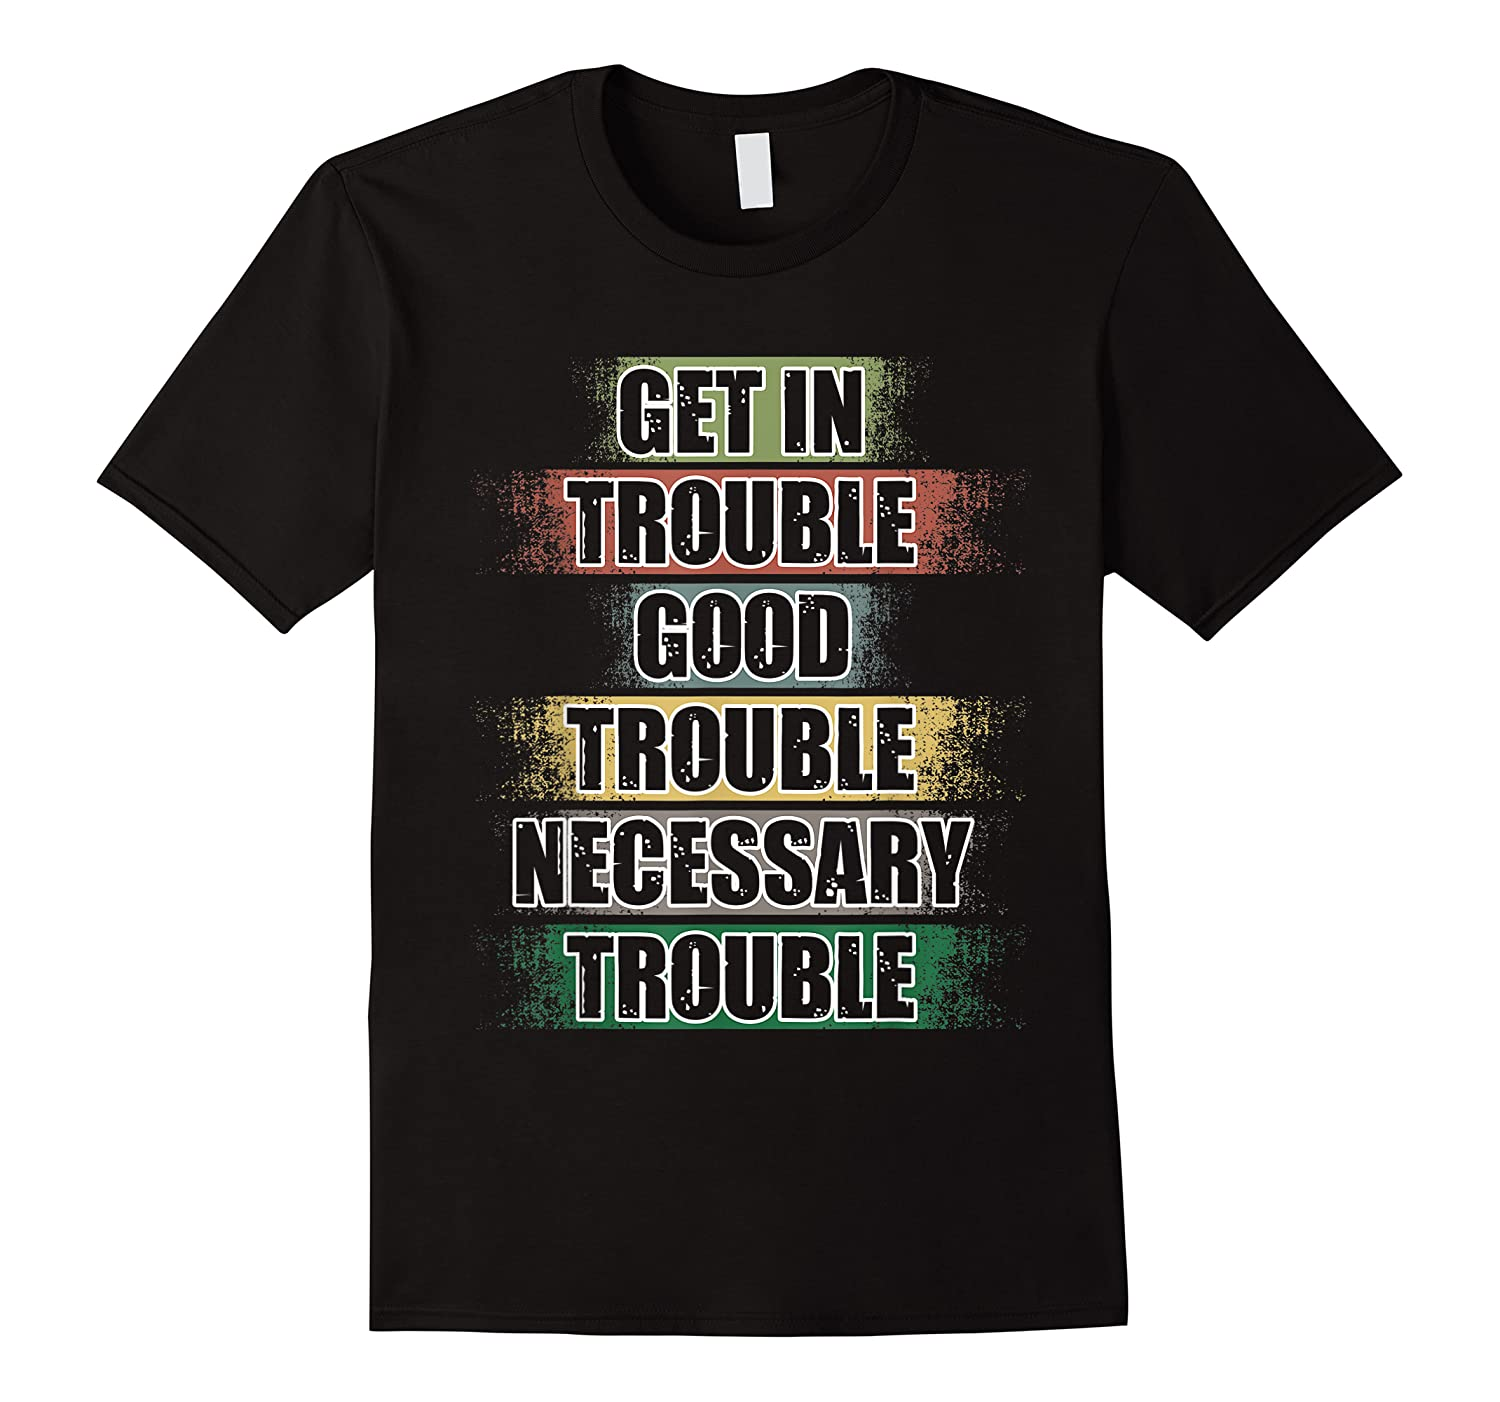 Get In Good Necessary Trouble John Lewis Social Justice Shirts